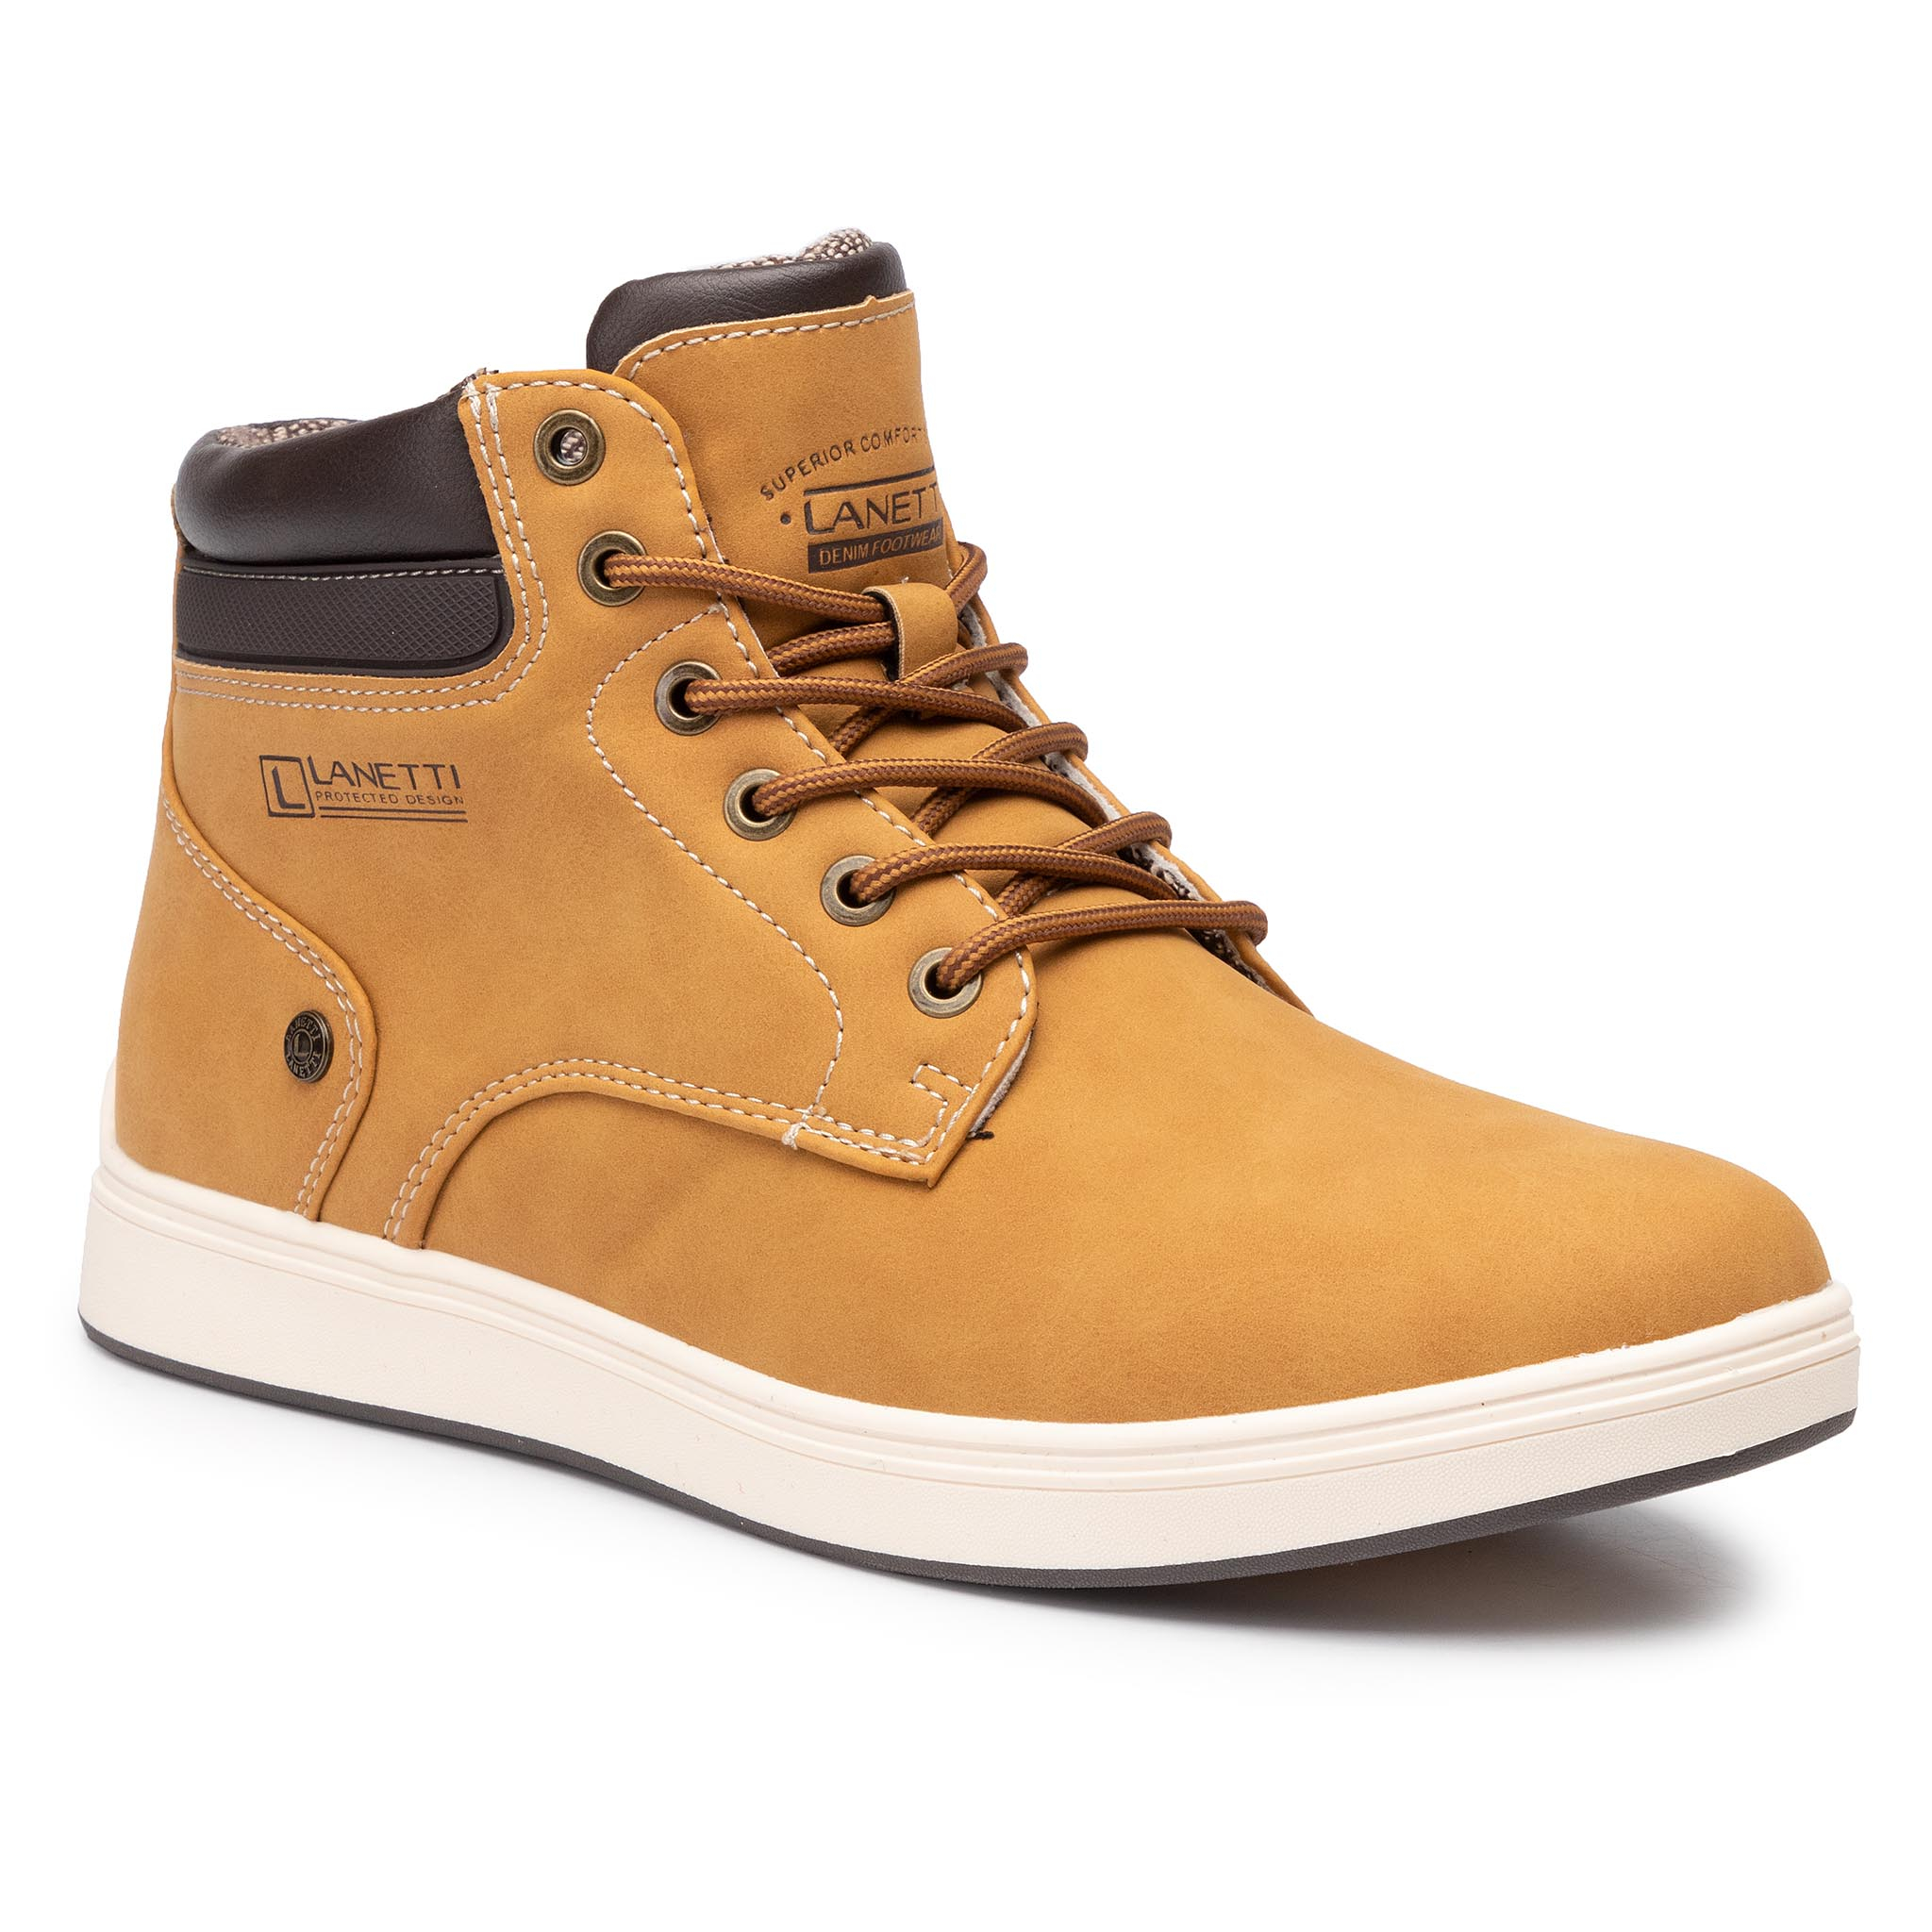 Boots LANETTI - MP07-171017-01 Camel 1